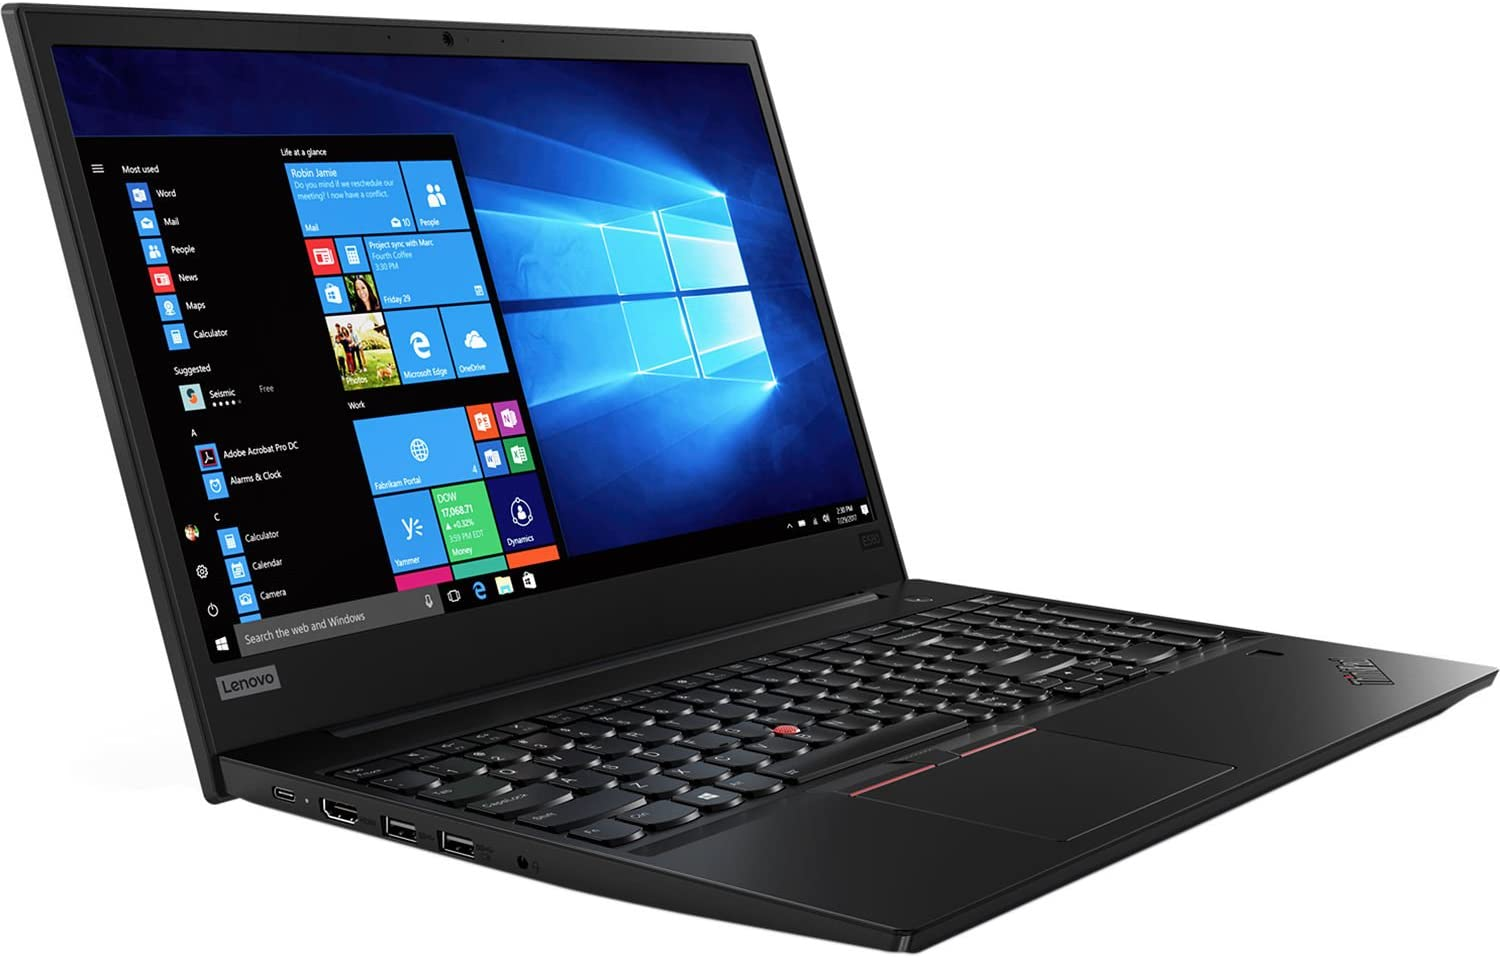 Lenovo ThinkPad E580 15.6 inch High Performance Business laptop, 512GB SSD, Intel Core i5 7th Gen, 8GB DDR4, WiFi, Gigabit LAN, HDMI, USB C, fingerprint reader, Windows 10 Pro, Thin and Light